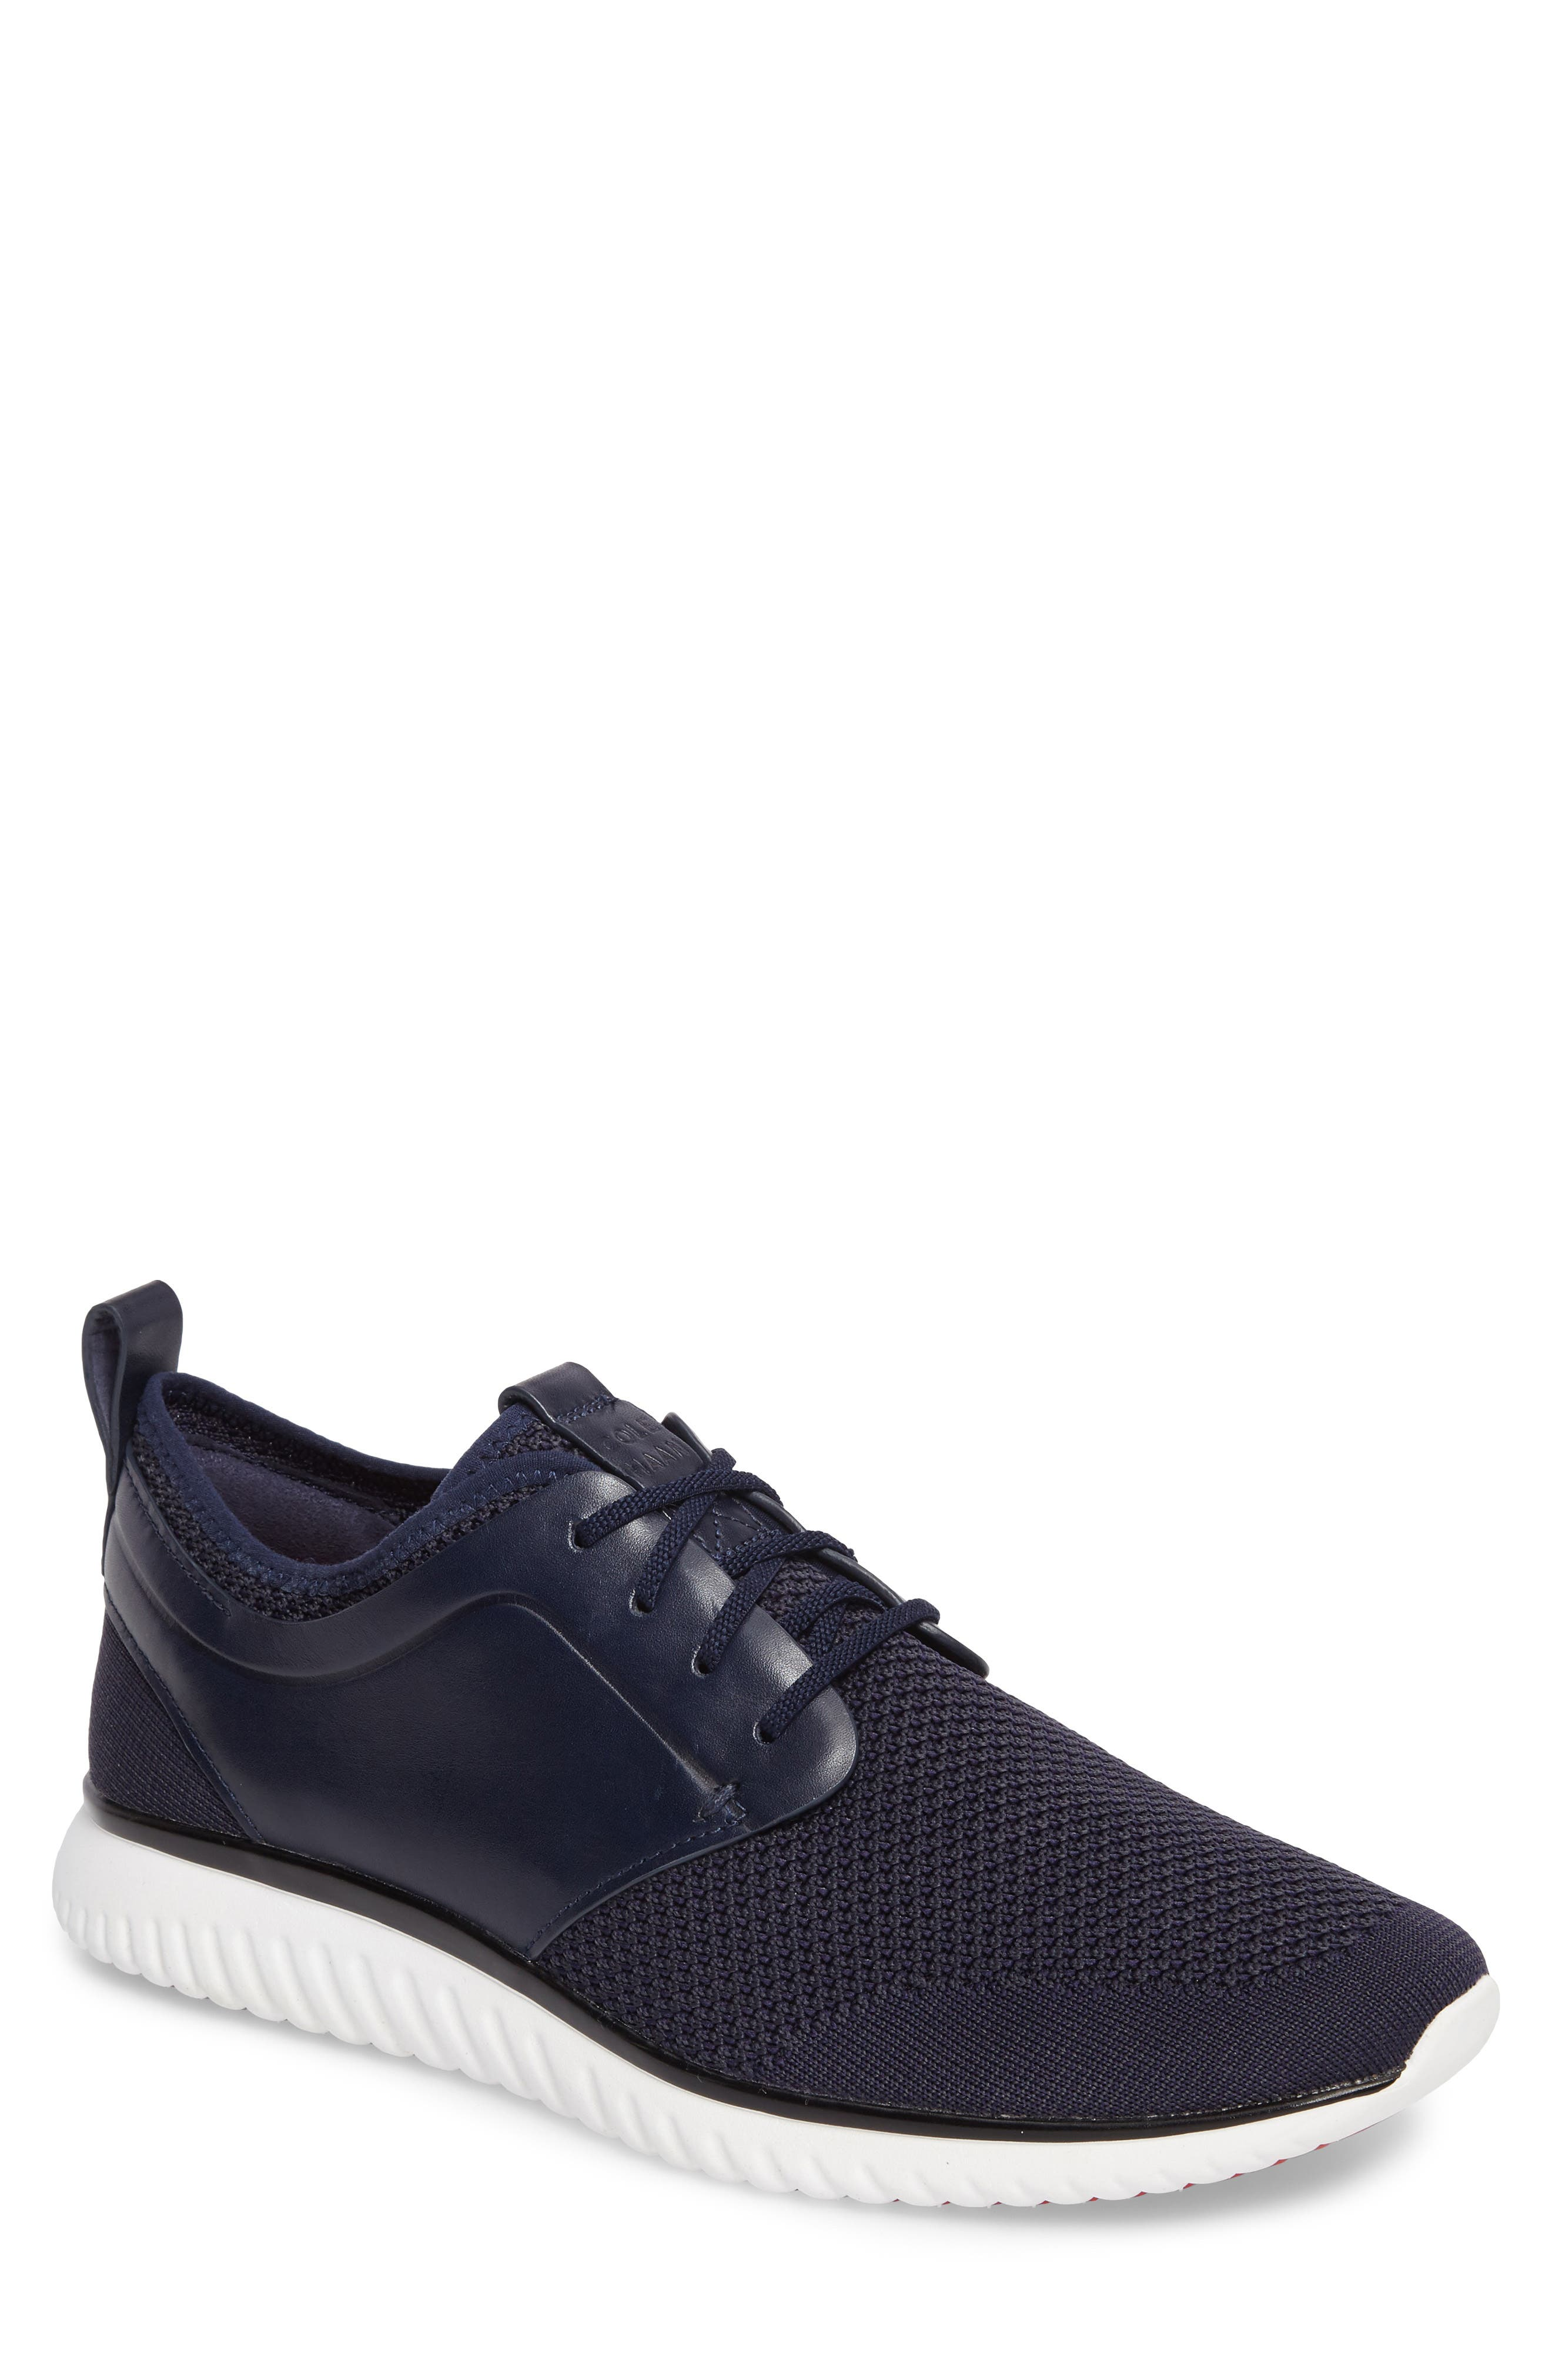 Main Image - Cole Haan 2.Zero Grand Motion Knit Oxford (Men)